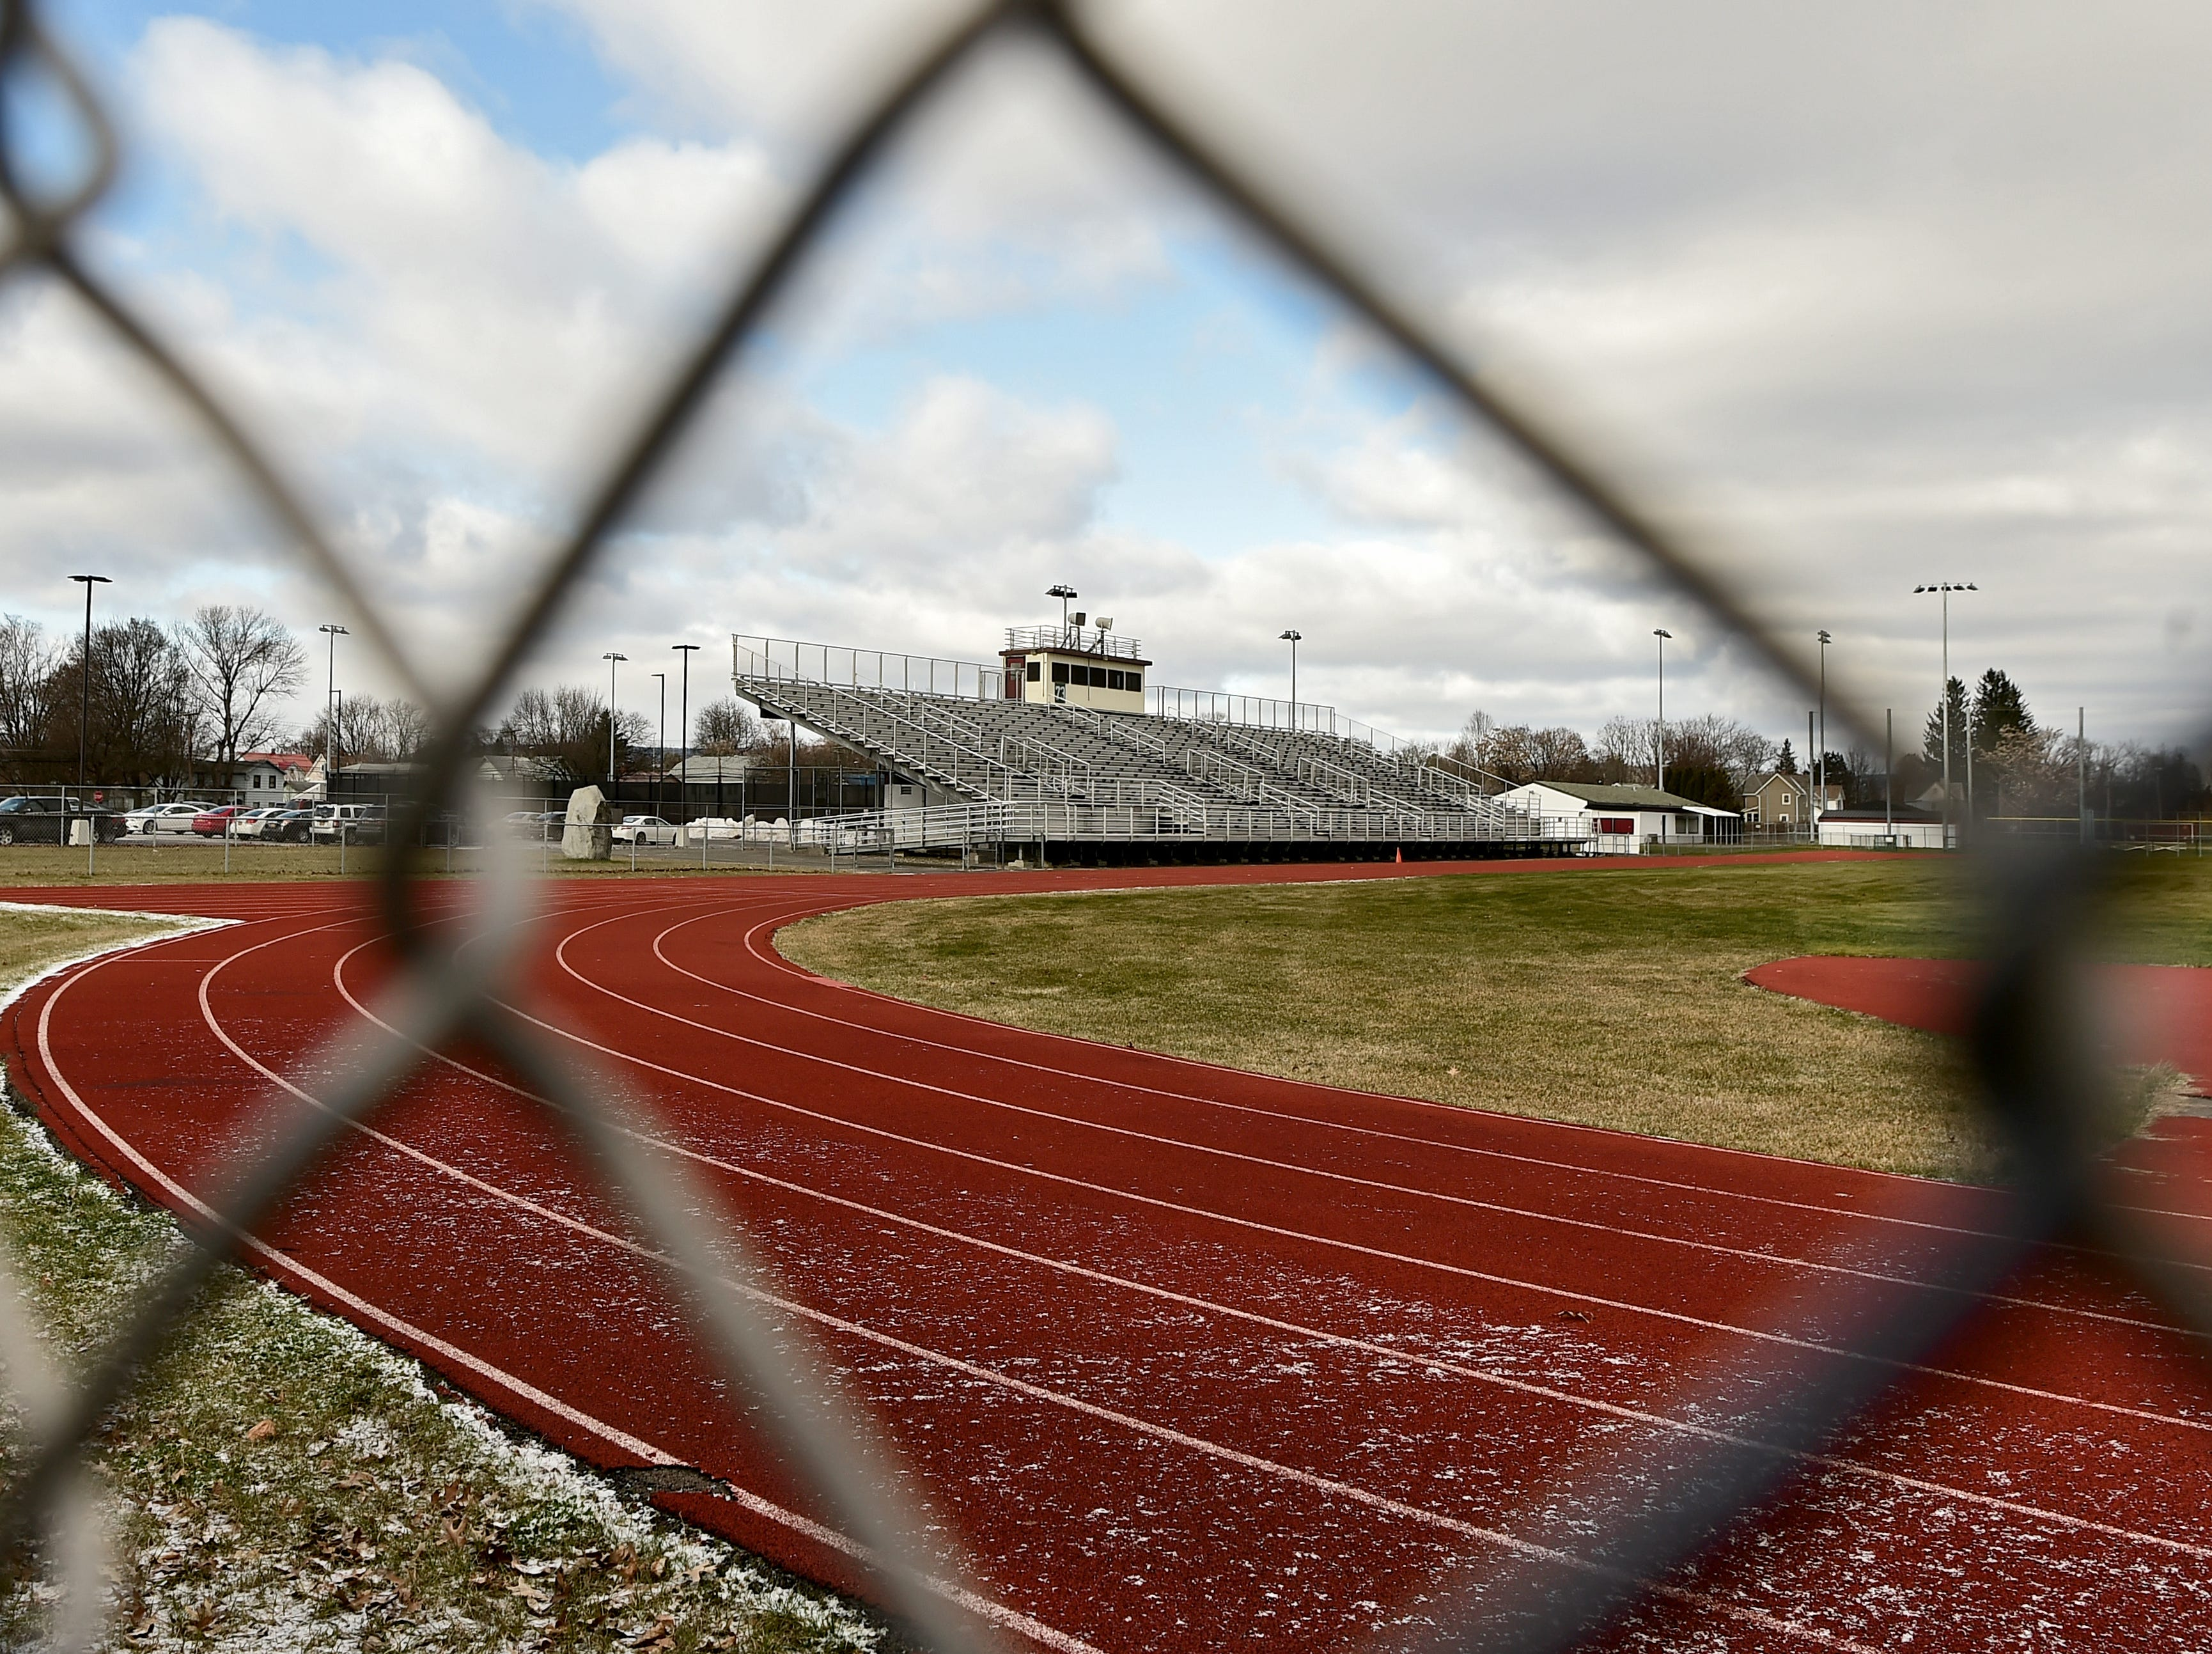 The Thomas J. Hurley Athletic Complex at Elmira High School. Testing revealed that the athletic field has high levels of polychlorinated biphenyls, or PCBs, which are known carcinogens.